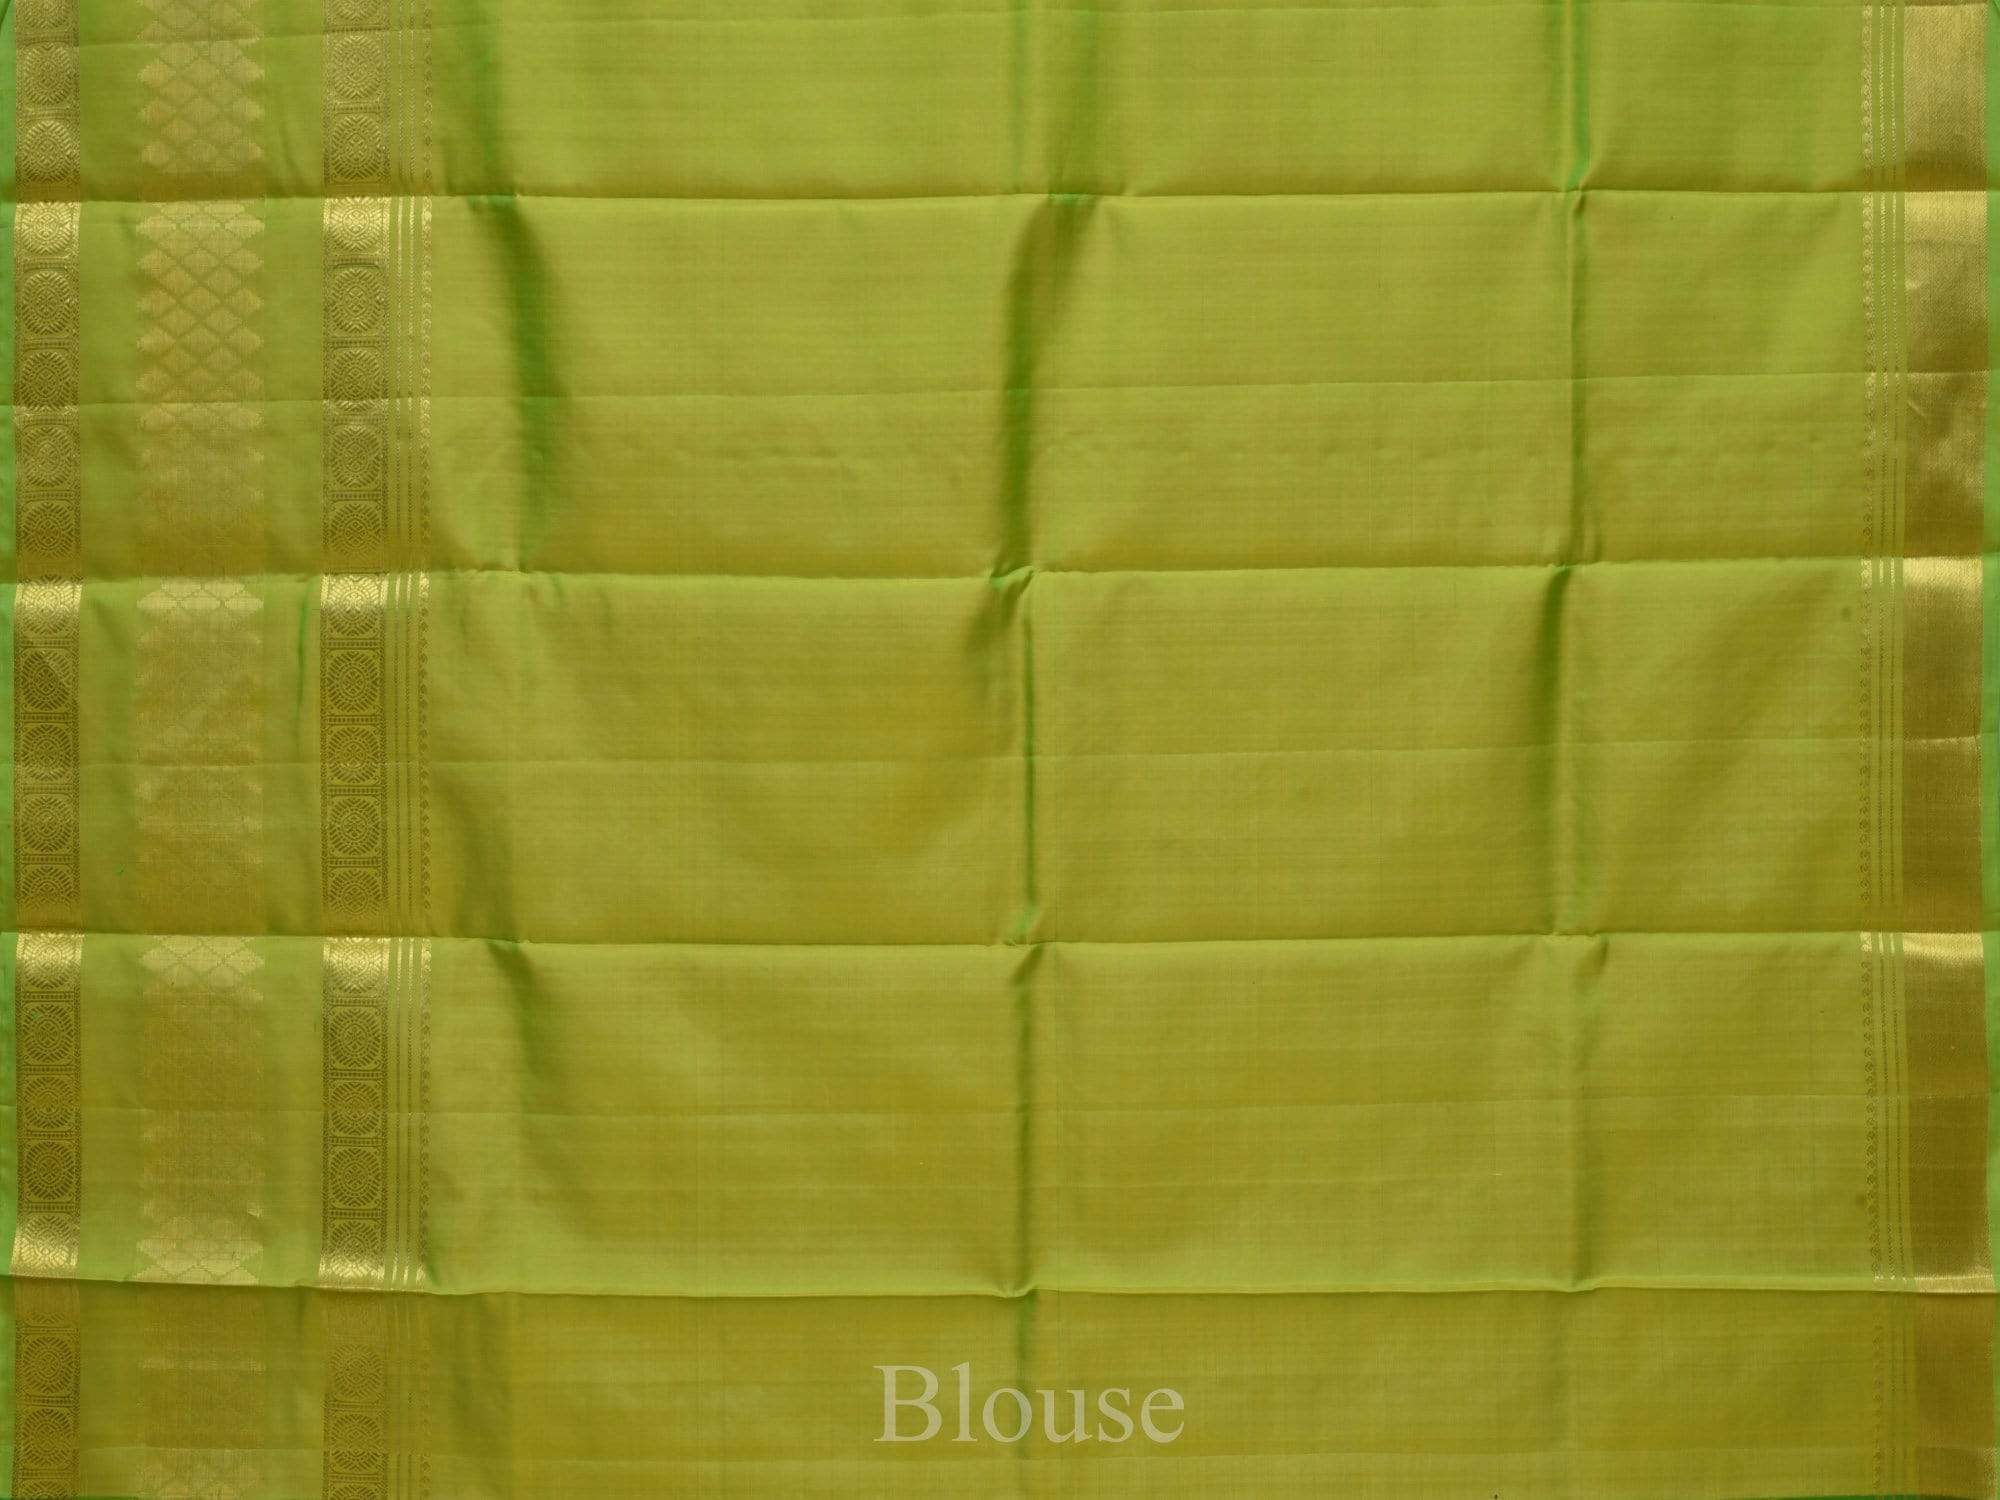 Green Kanchipuram Silk Handloom Saree with Checks and Border Design K0221